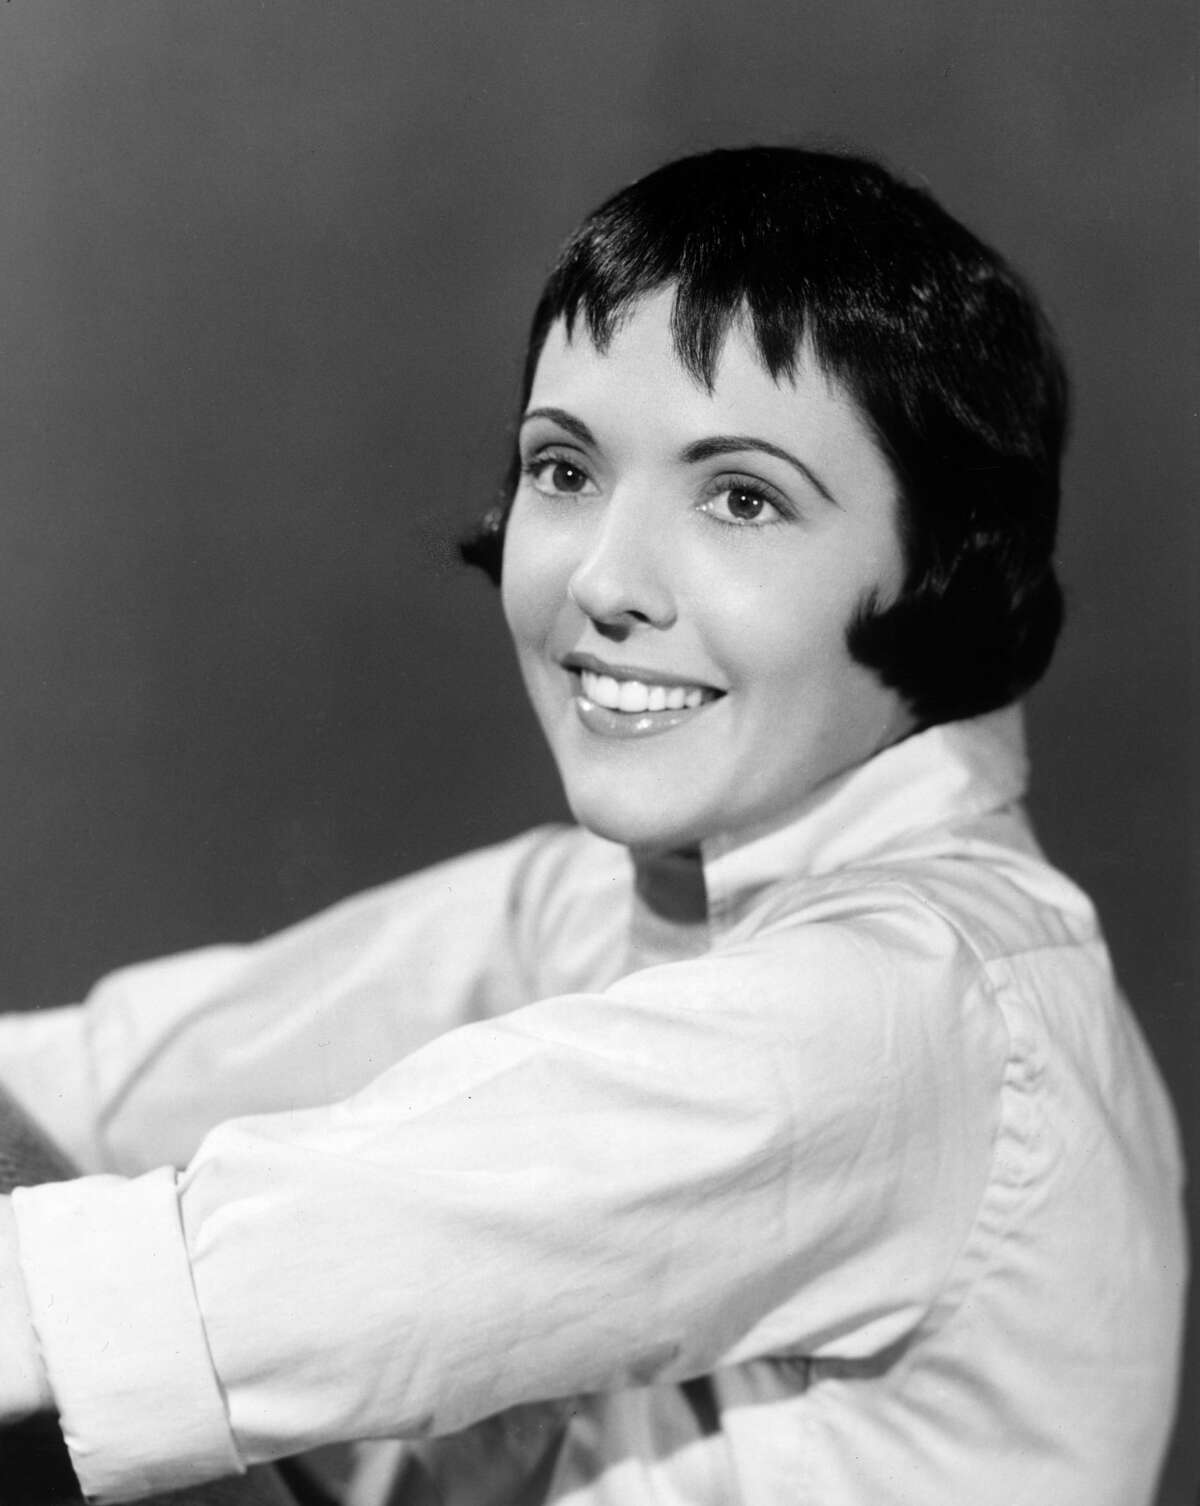 circa 1955: Studio headshot portrait of American singer Keely Smith smiling in an oxford shirt.